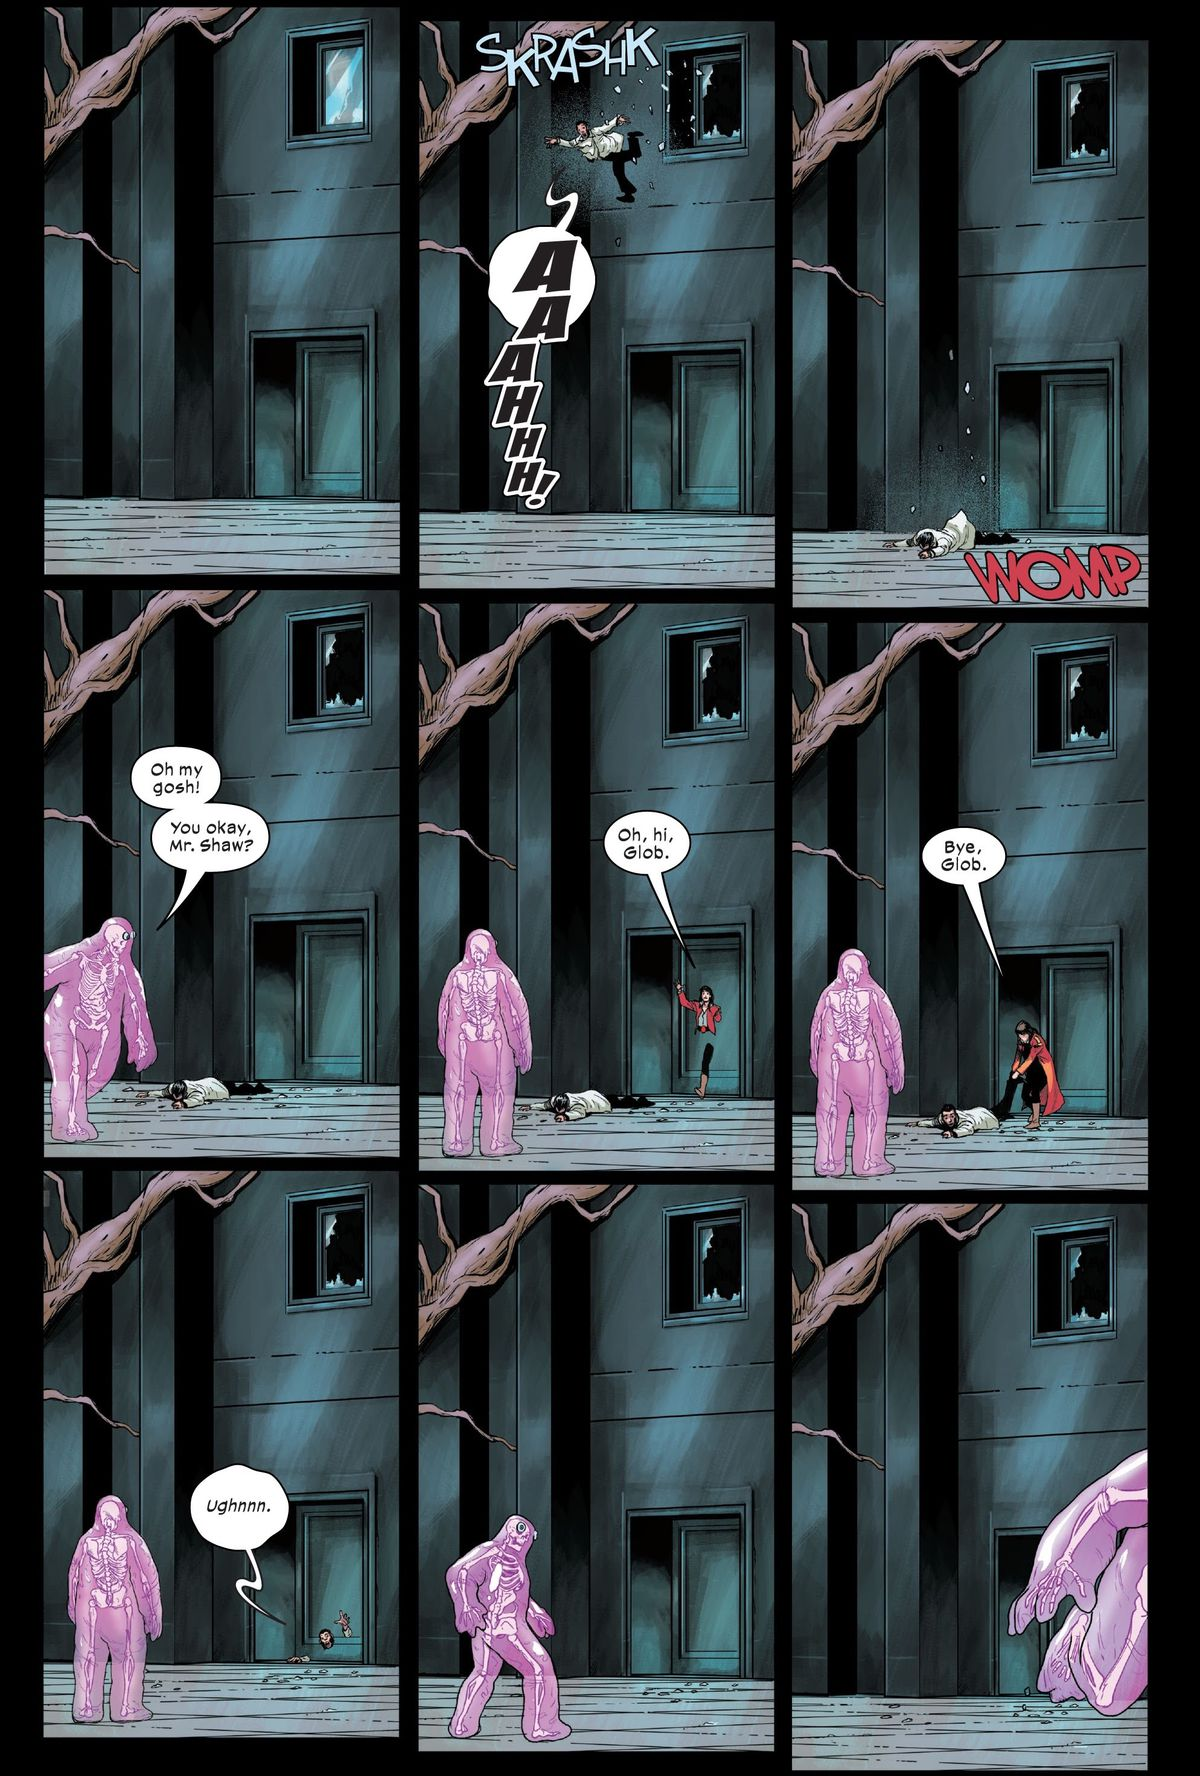 """Screaming, Sebastian Shaw leaps as he leaps out of a second story window and lands with a WOMP. """"Oh my gosh! You okay, Mr. Shaw?"""" exclaims Glob Herman. Kitty Pryde phases through the front door of the building, """"Oh, hi, Glob,"""" grabs Shaw's leg, and drags him, groaning, back inside, """"Bye, Glob."""" Glob flees, in Marauders #16, Marvel Comics (2020)."""